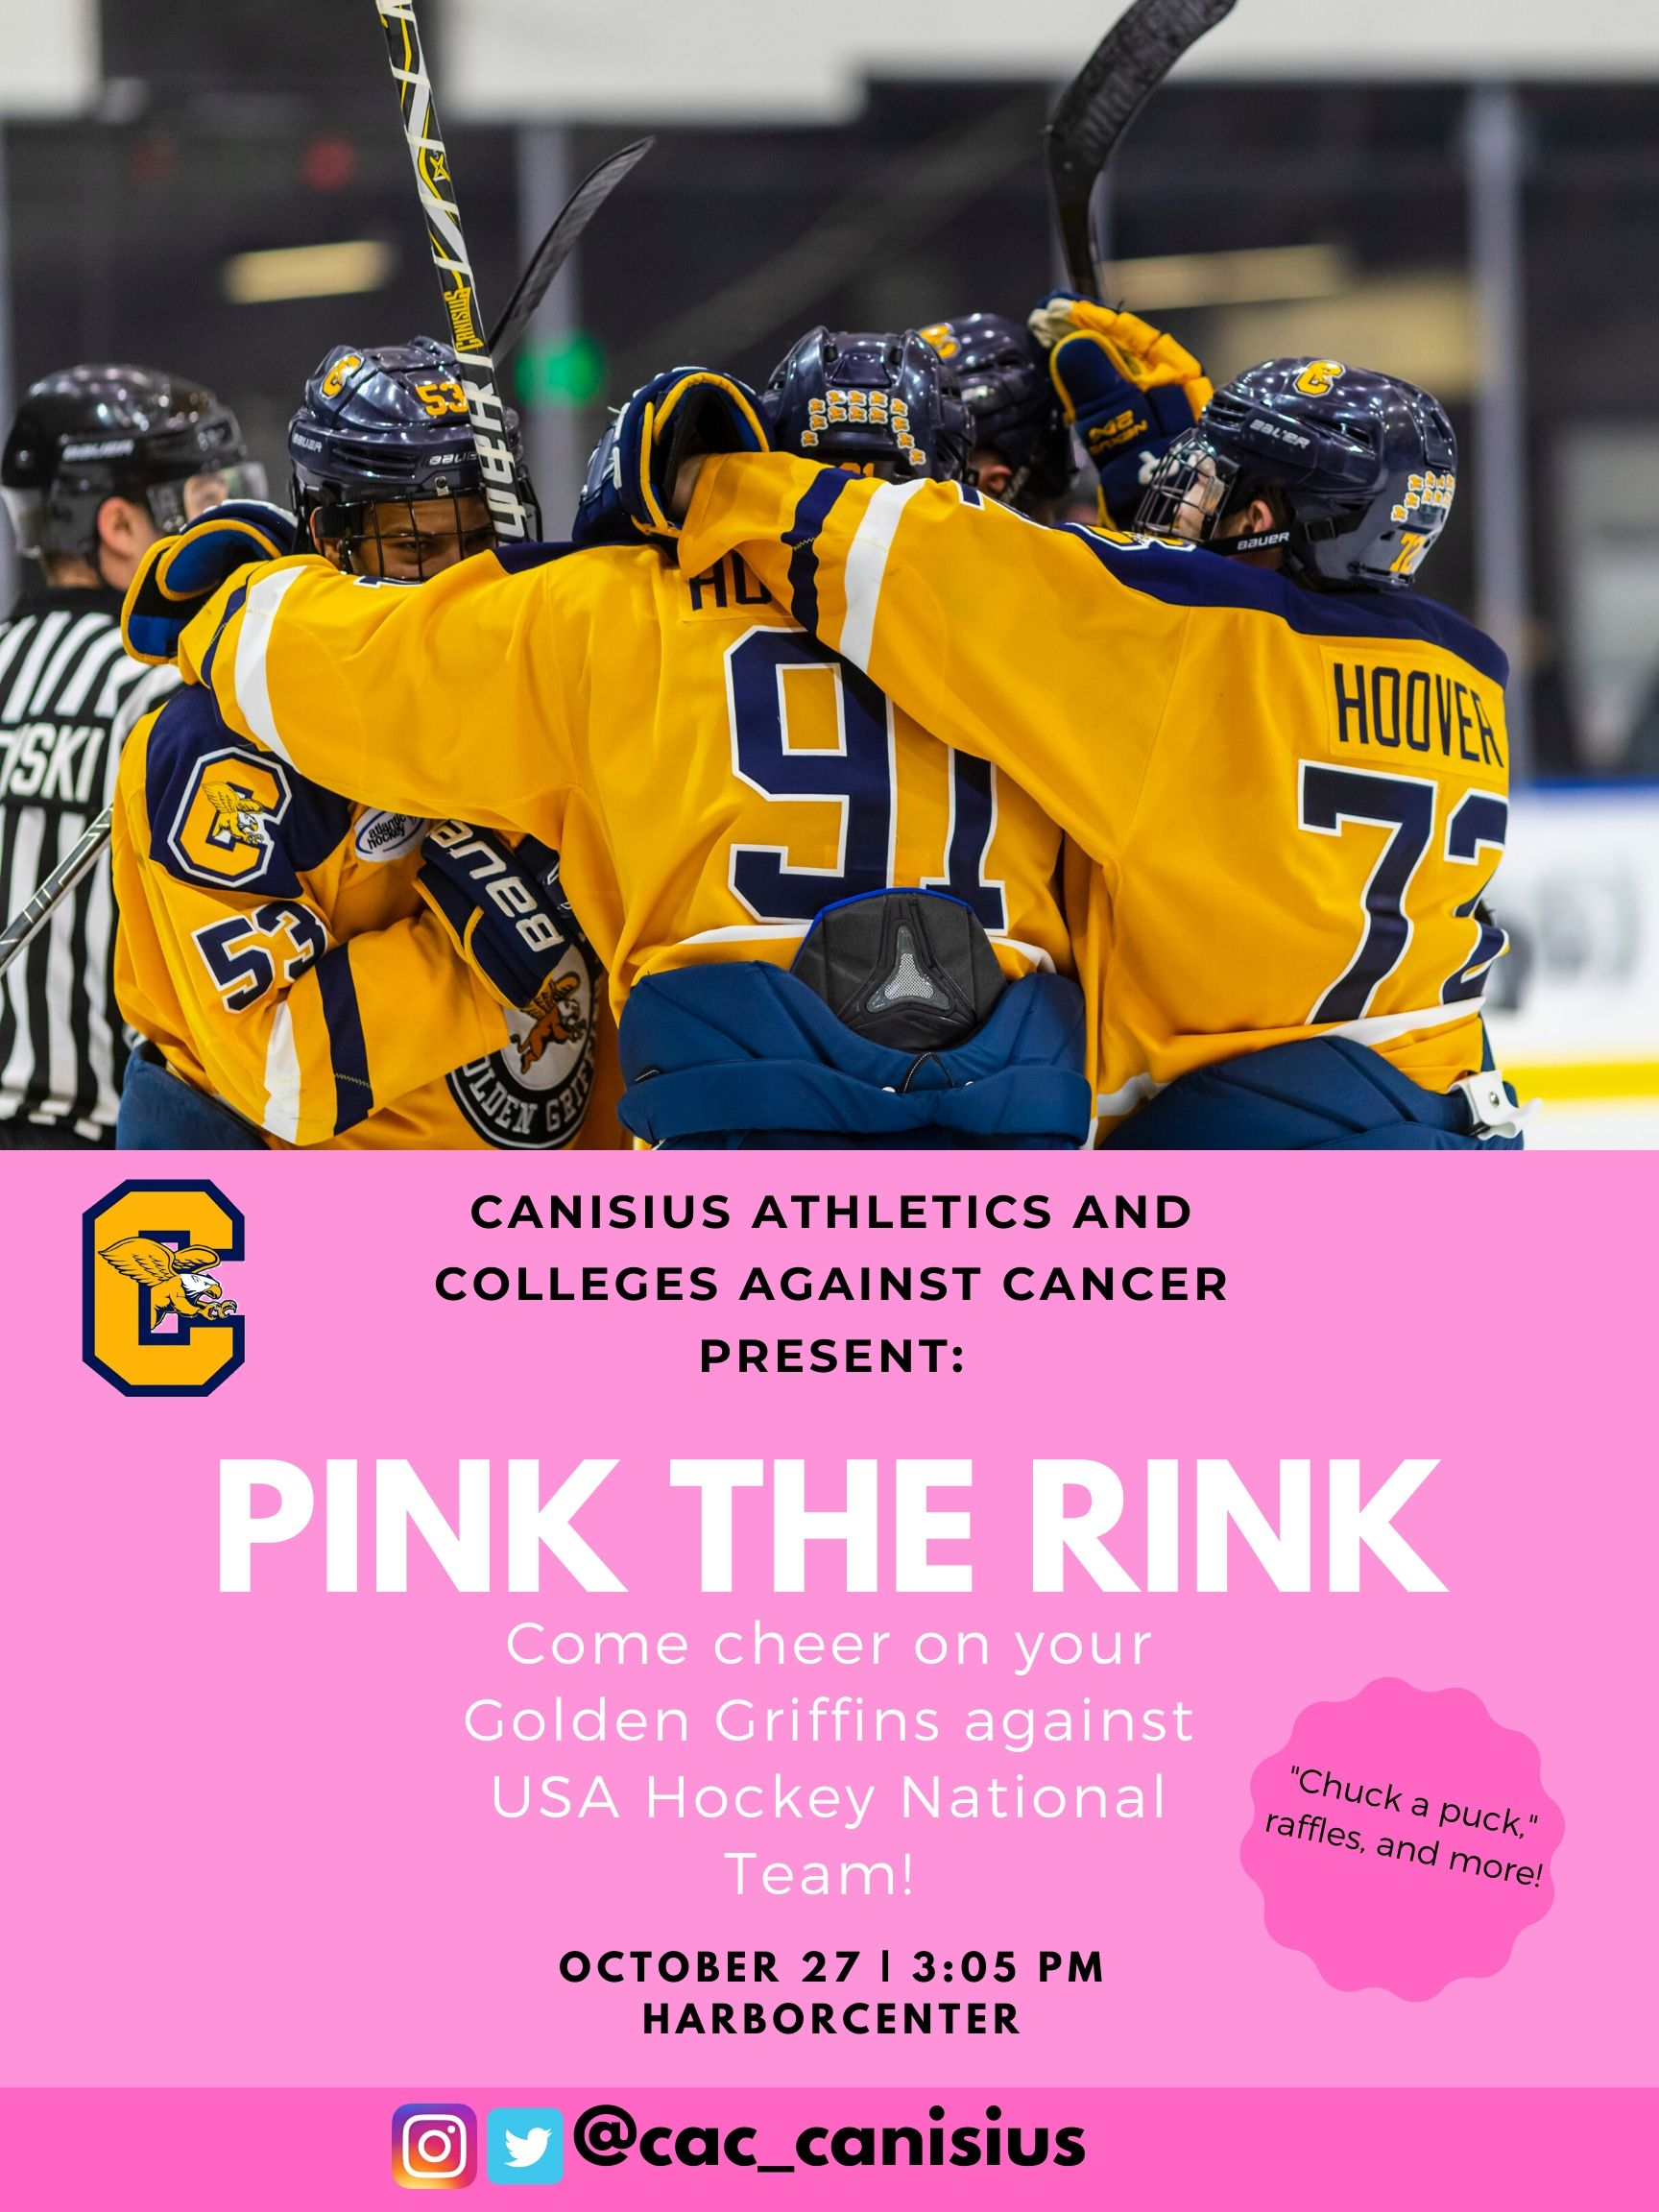 Pink the Rink Flyer 2019.jpg